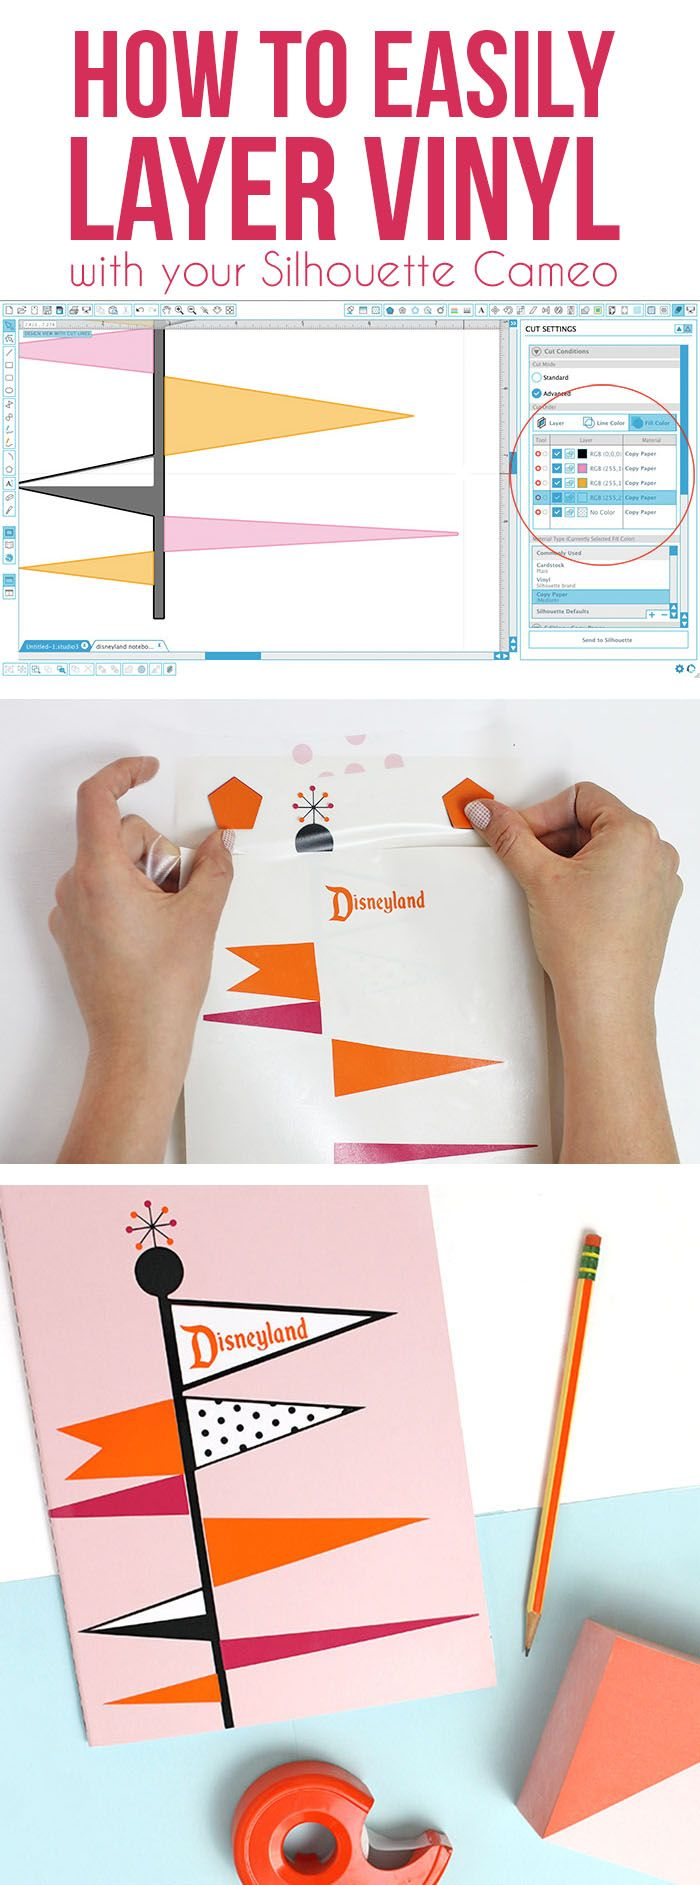 how to layer vinyl - learn the tricks for easily cutting and layering multi-color vinyl designs. Plus a free retro Disneyland-inspired decal design